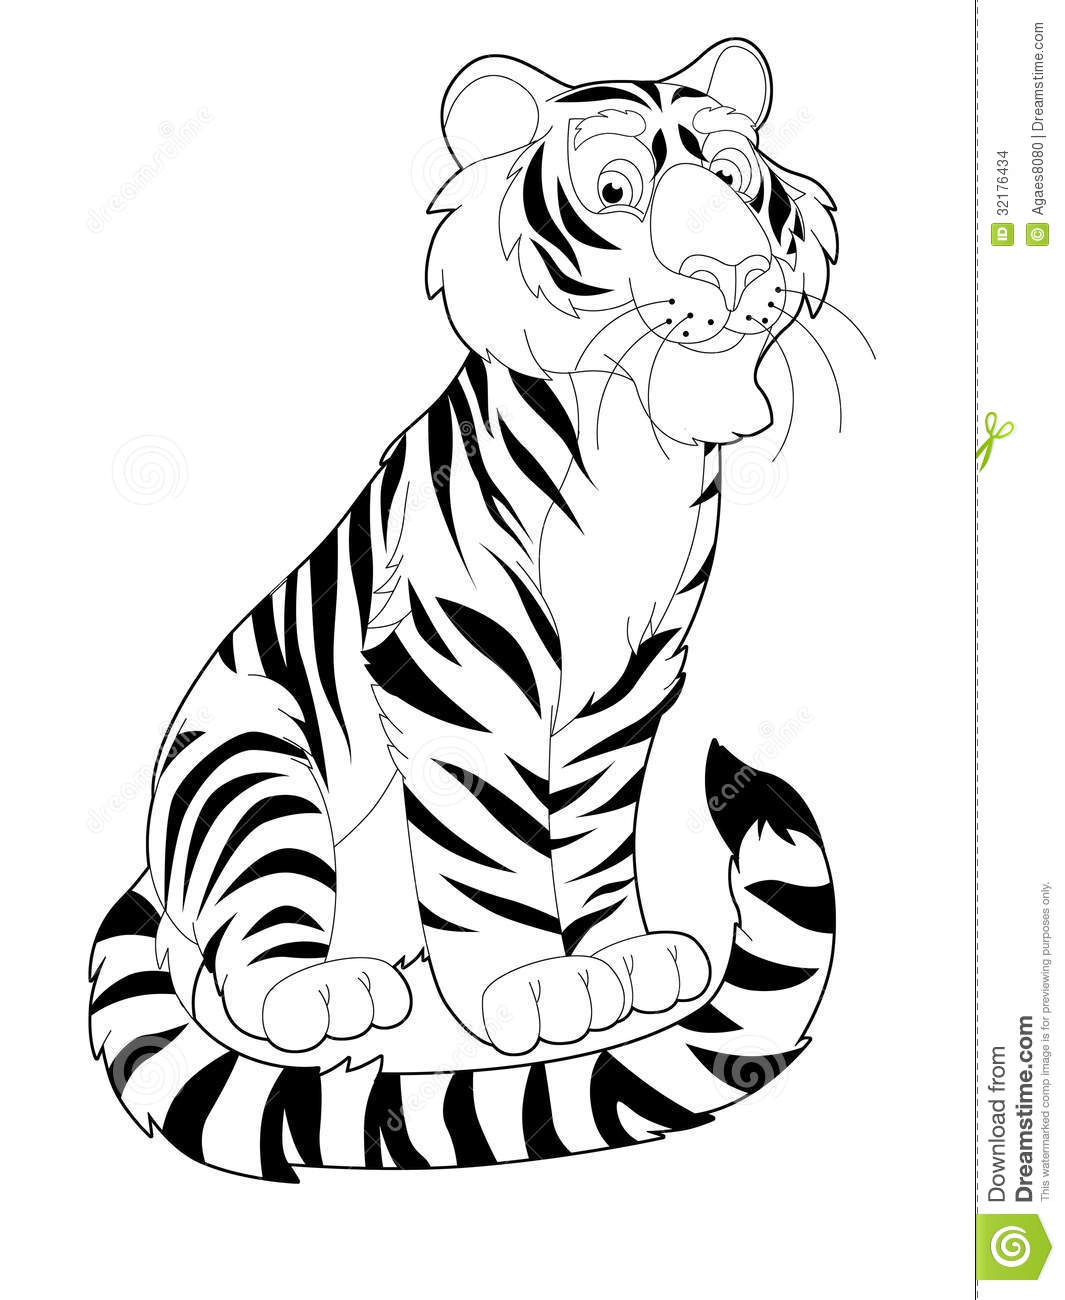 african tiger coloring pages - photo#19